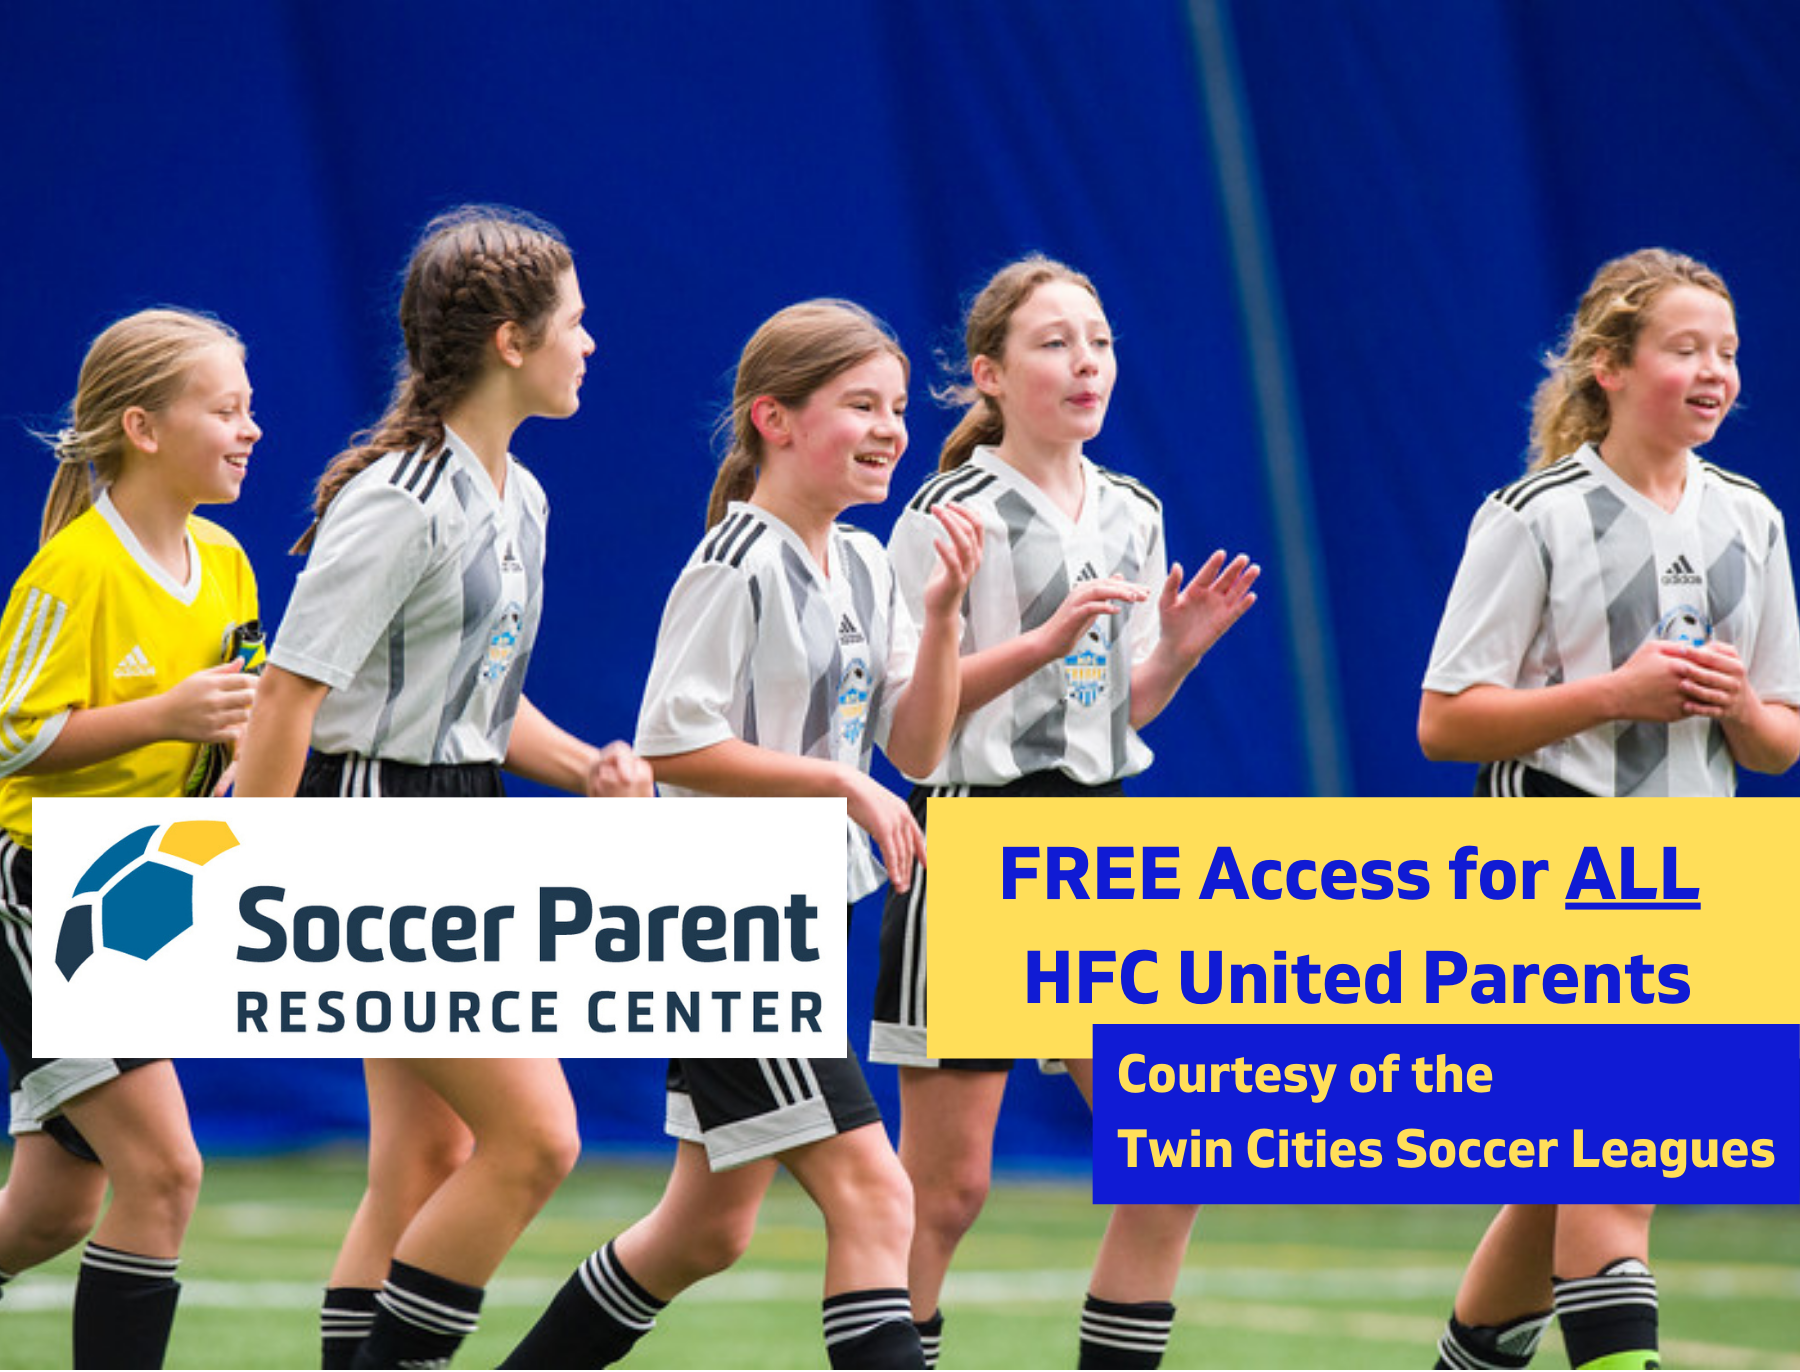 FREE Access to the Soccer Parent Resource Center